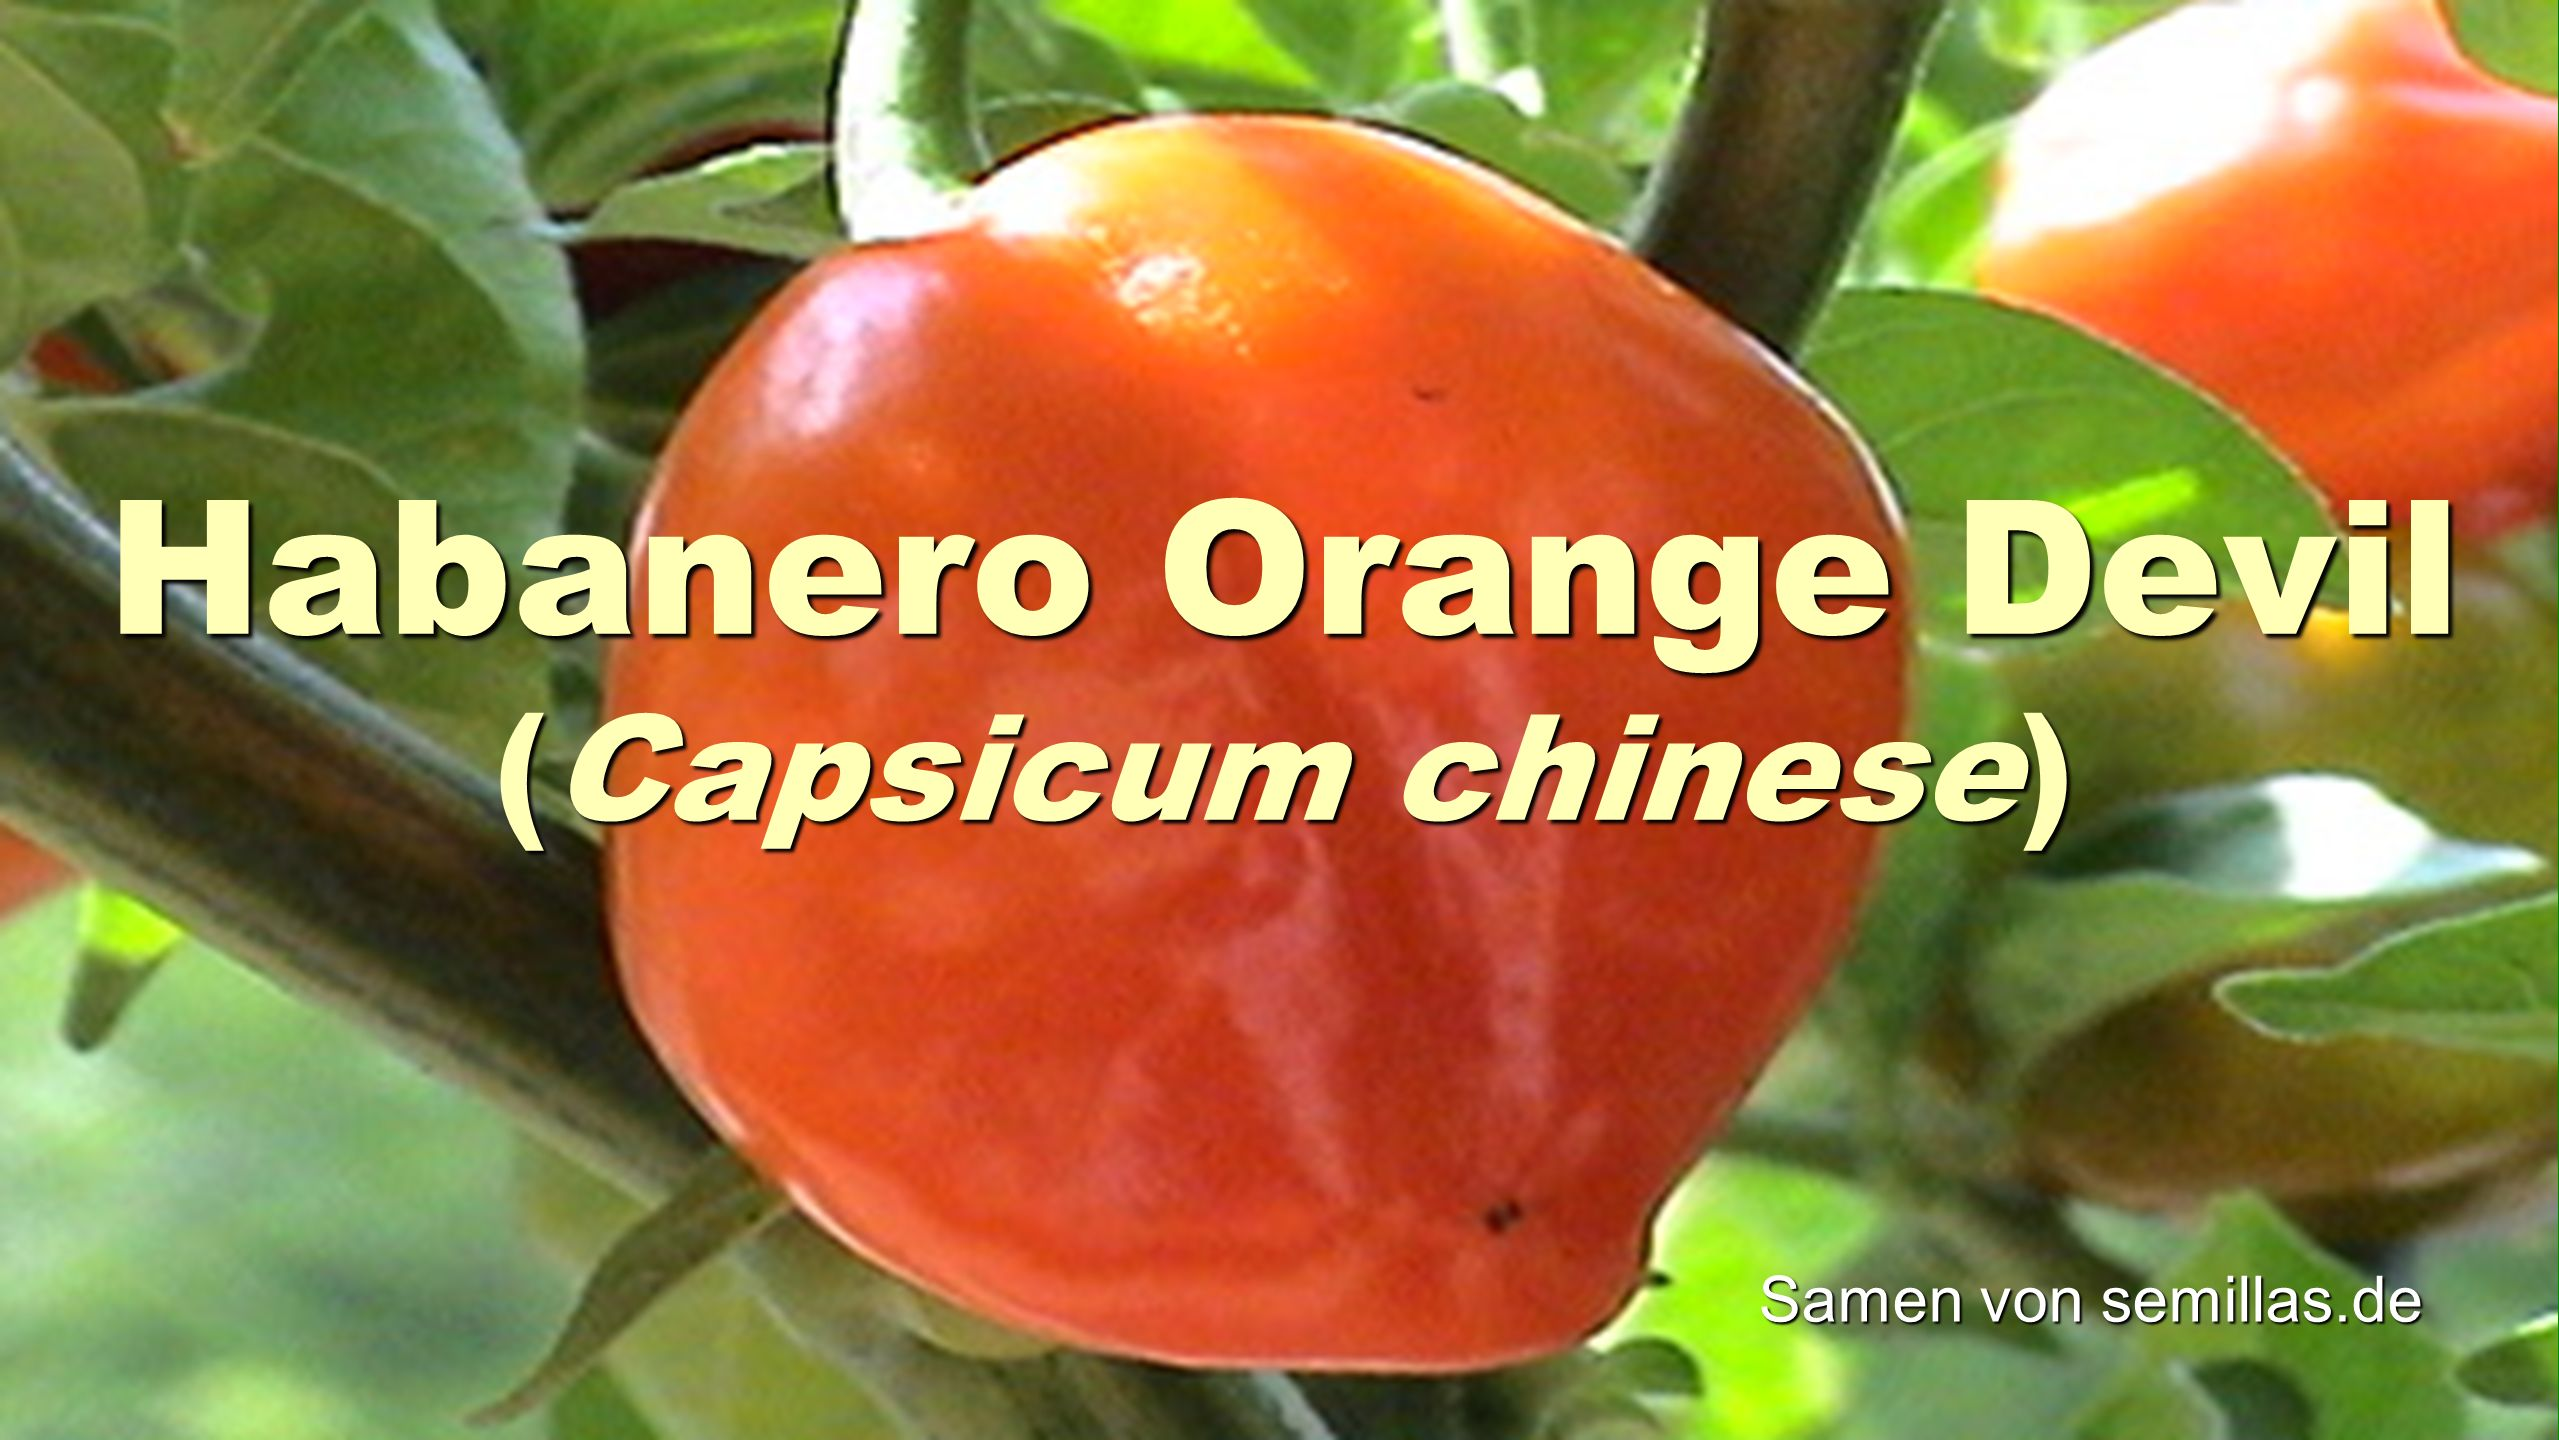 Habanero Orange Devil (Capsicum chinese)